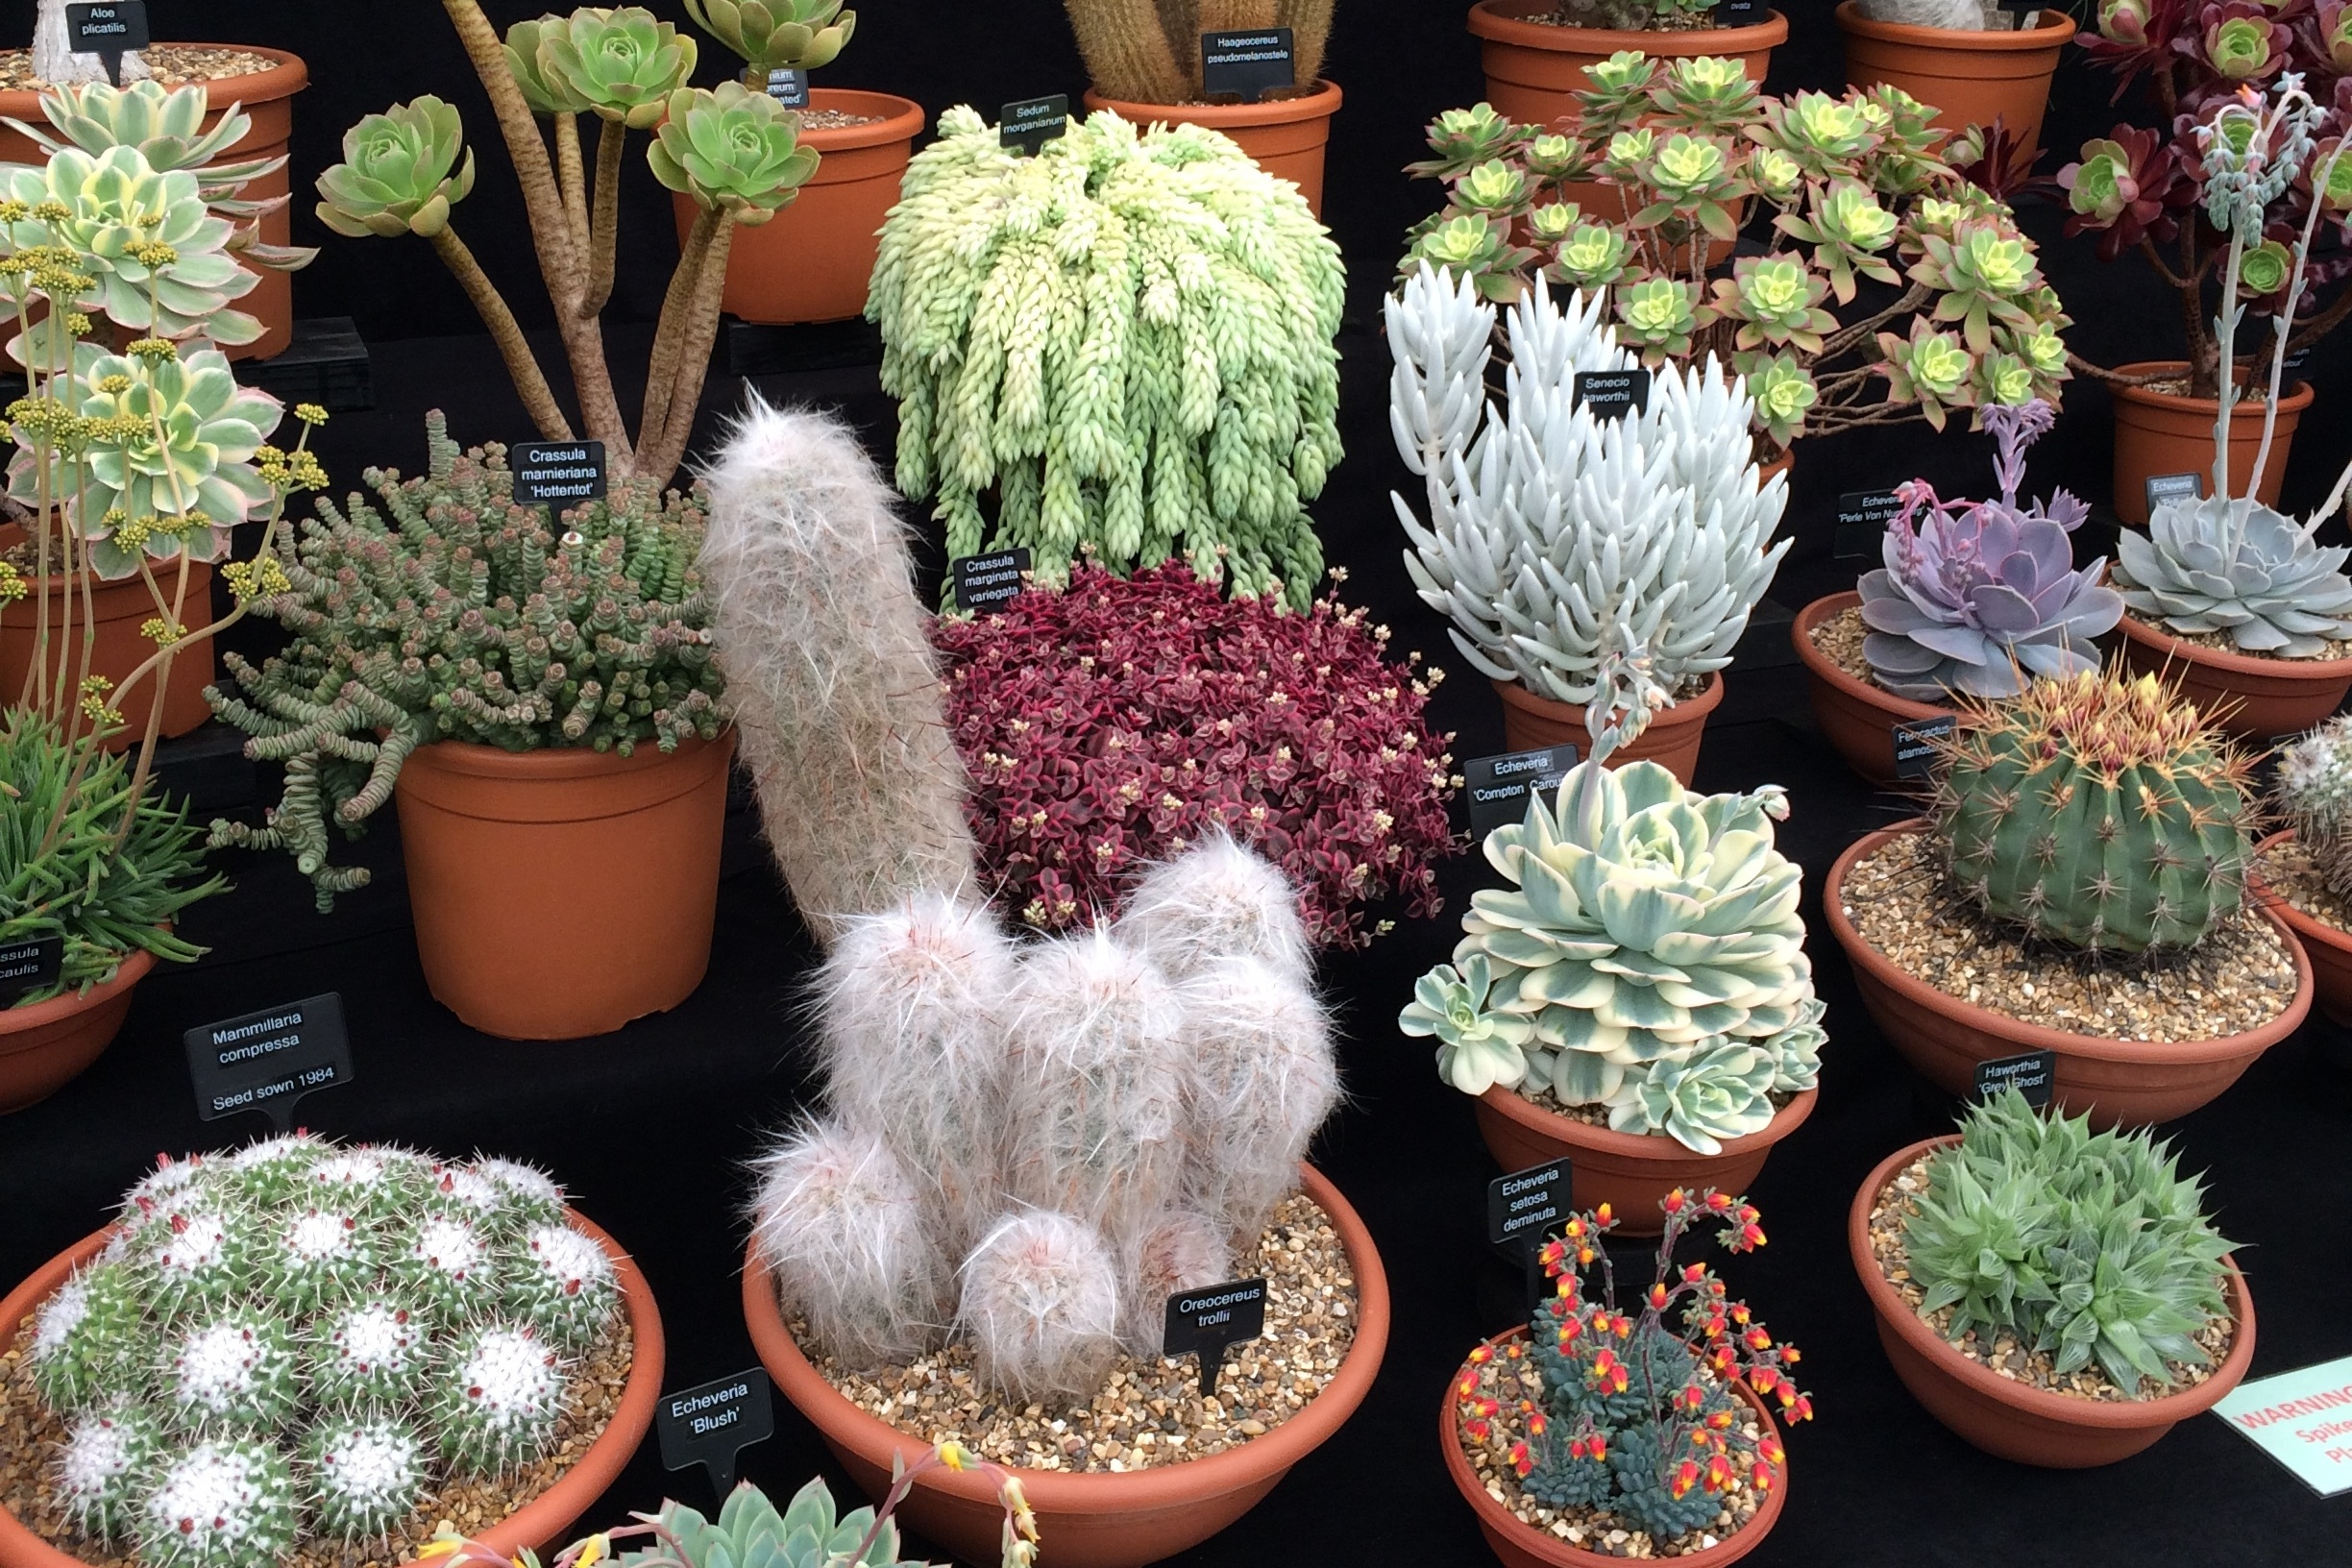 Ottershaw Cacti display at the Chelsea flower show 2019. Photograph: Jane Perrone.